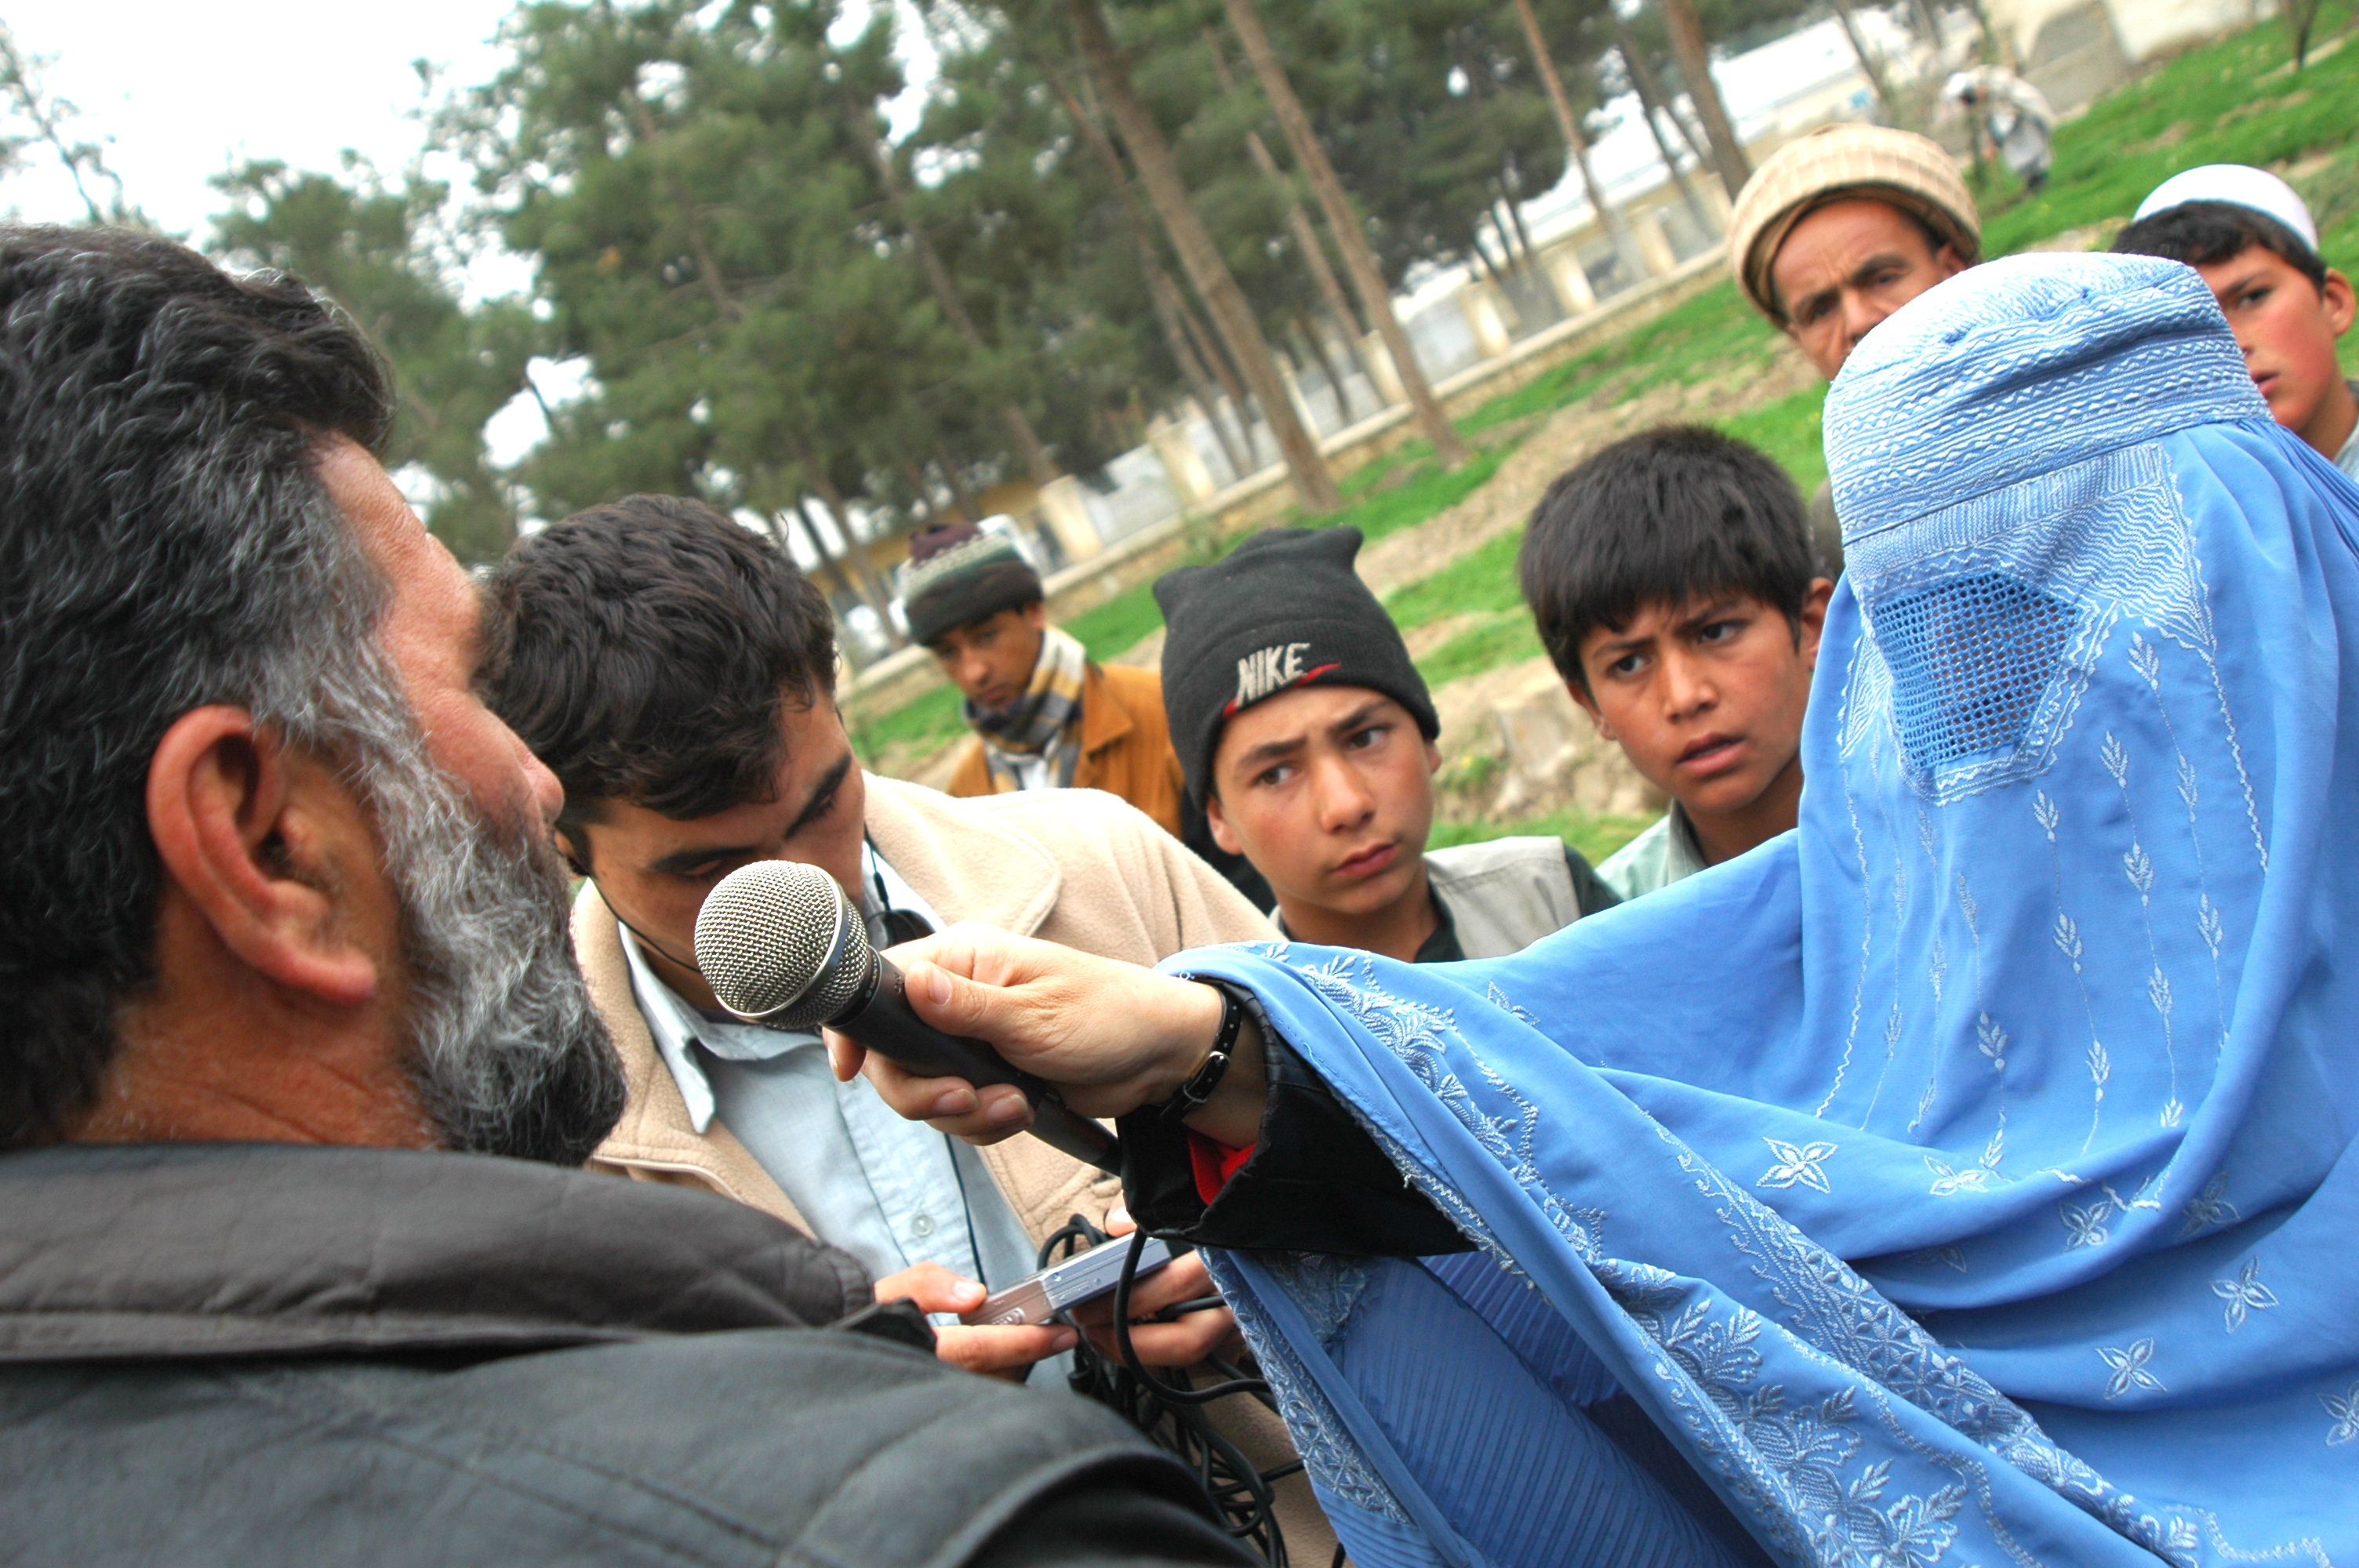 An Afghan woman in a burqa interviews some men